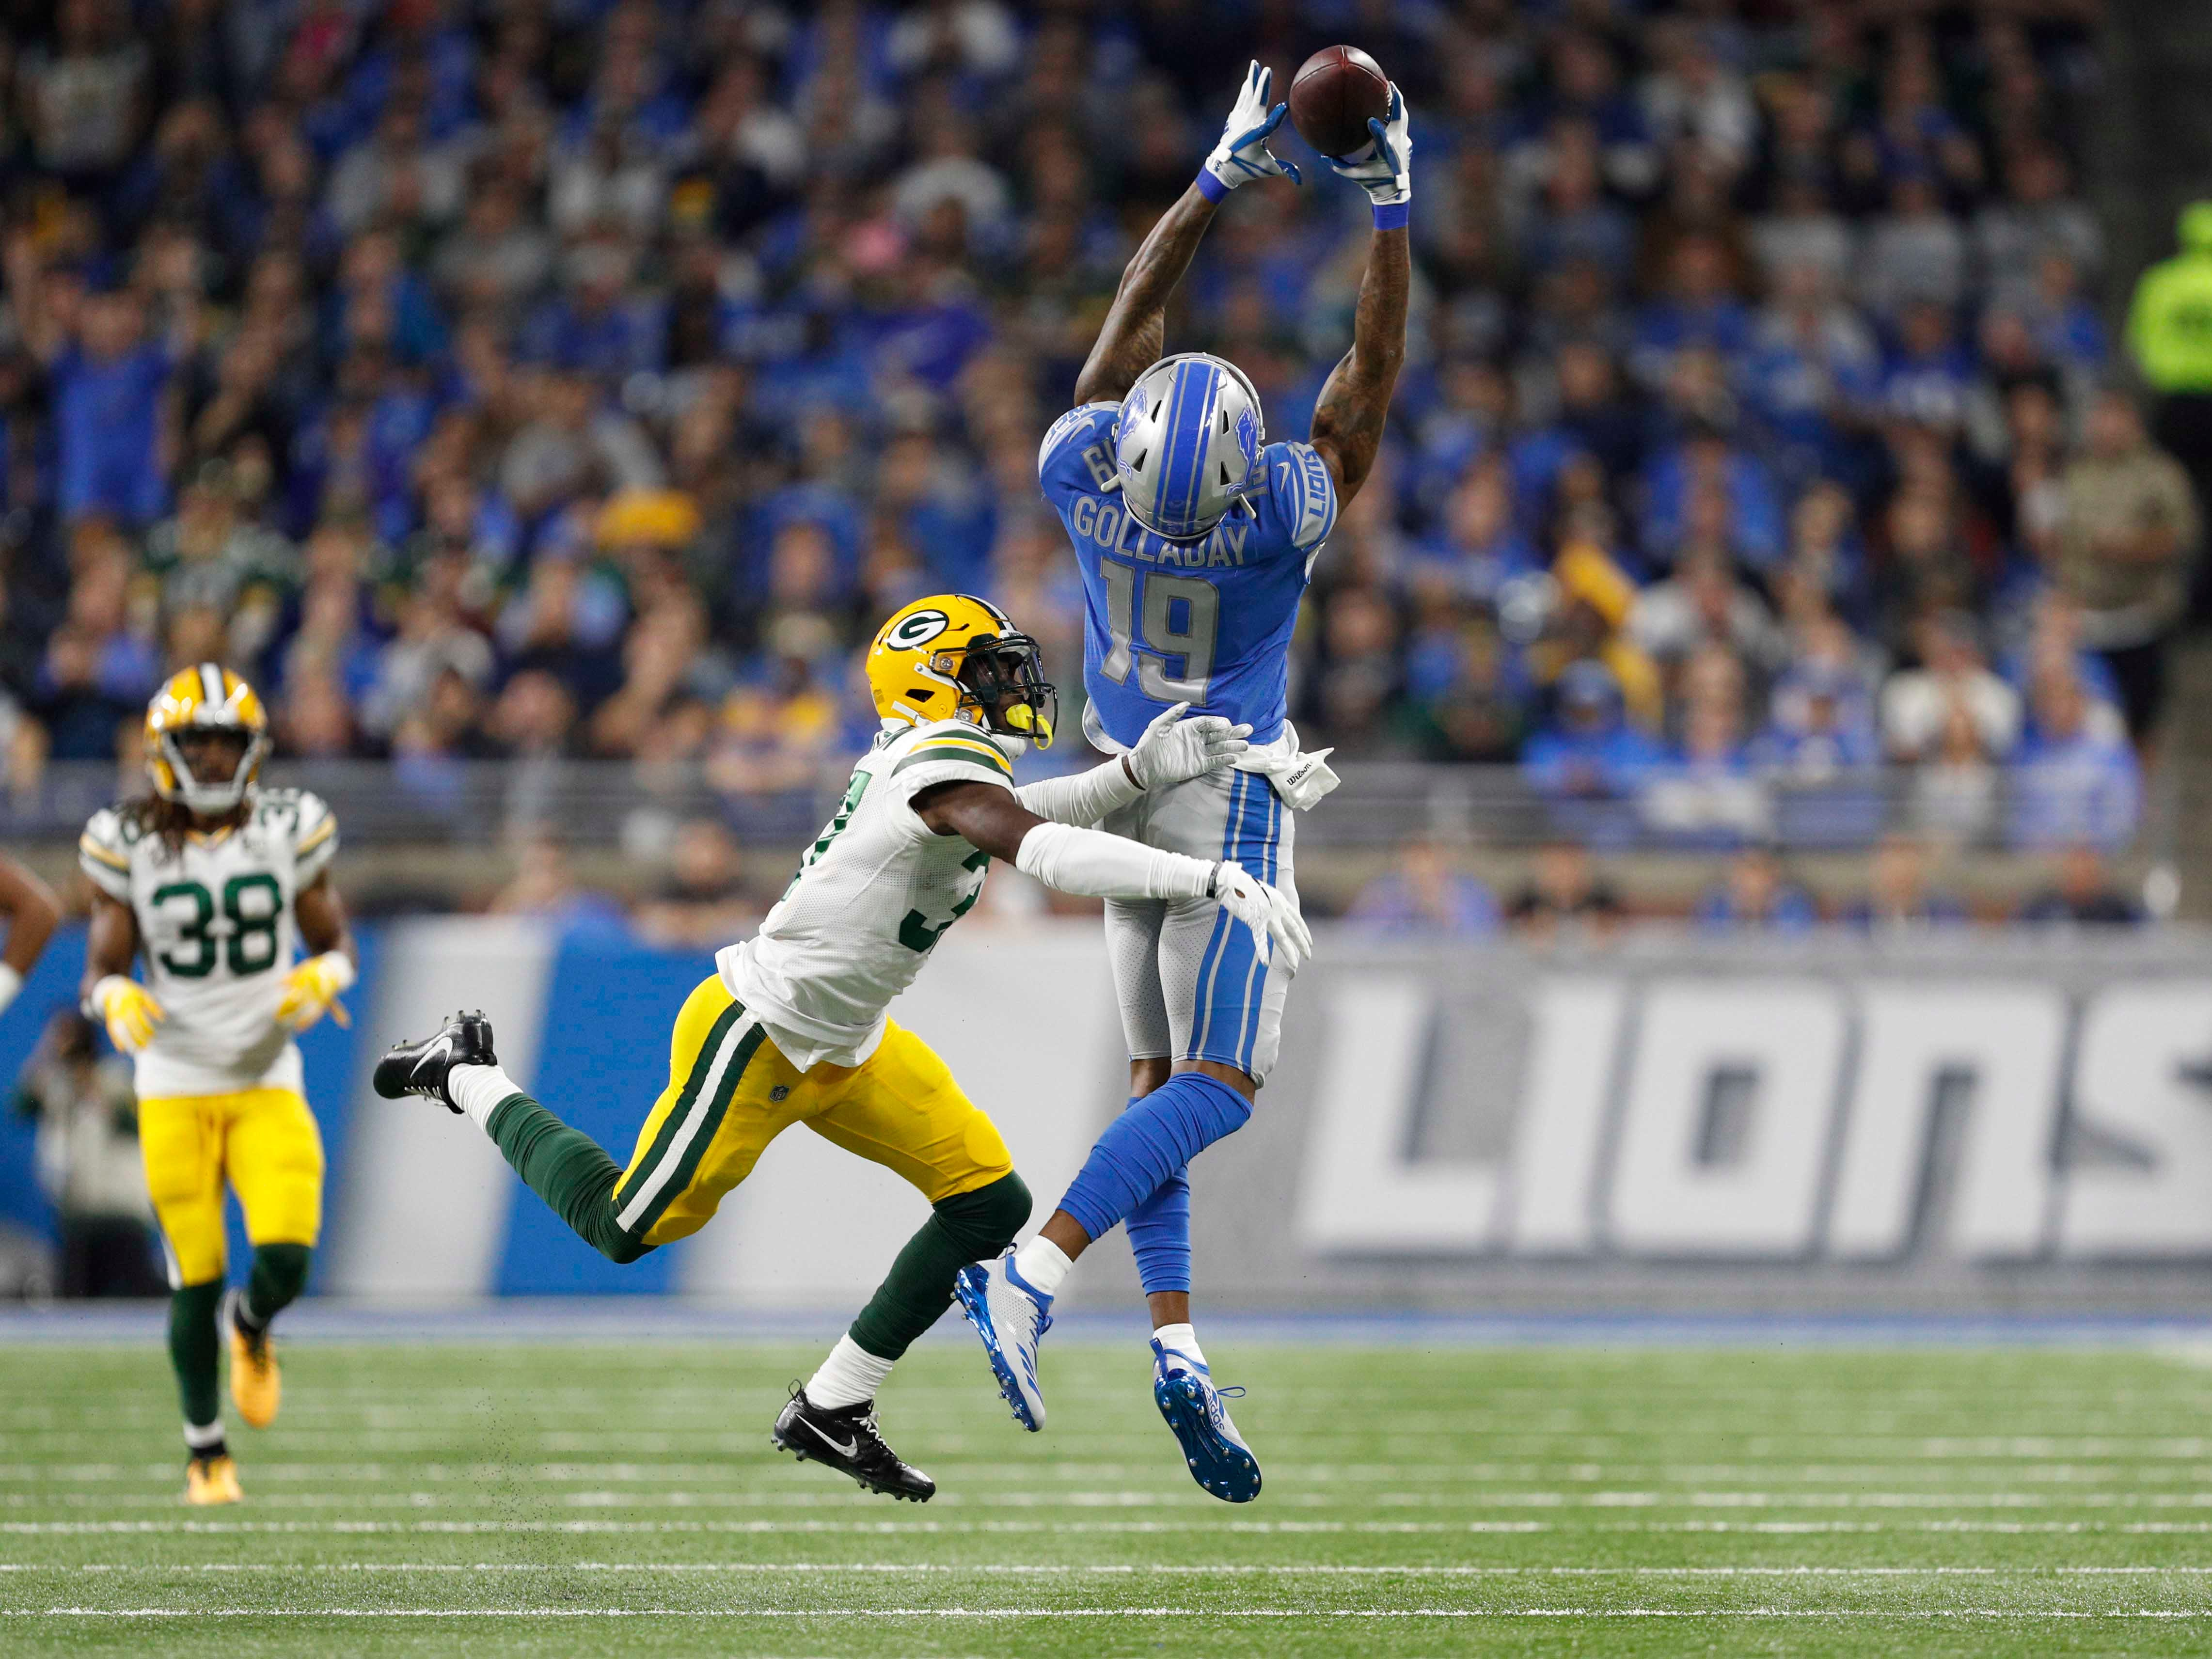 Oct 7, 2018; Detroit, MI, USA; Detroit Lions wide receiver Kenny Golladay (19) makes a catch during the first quarter against Green Bay Packers cornerback Josh Jackson (37) at Ford Field.